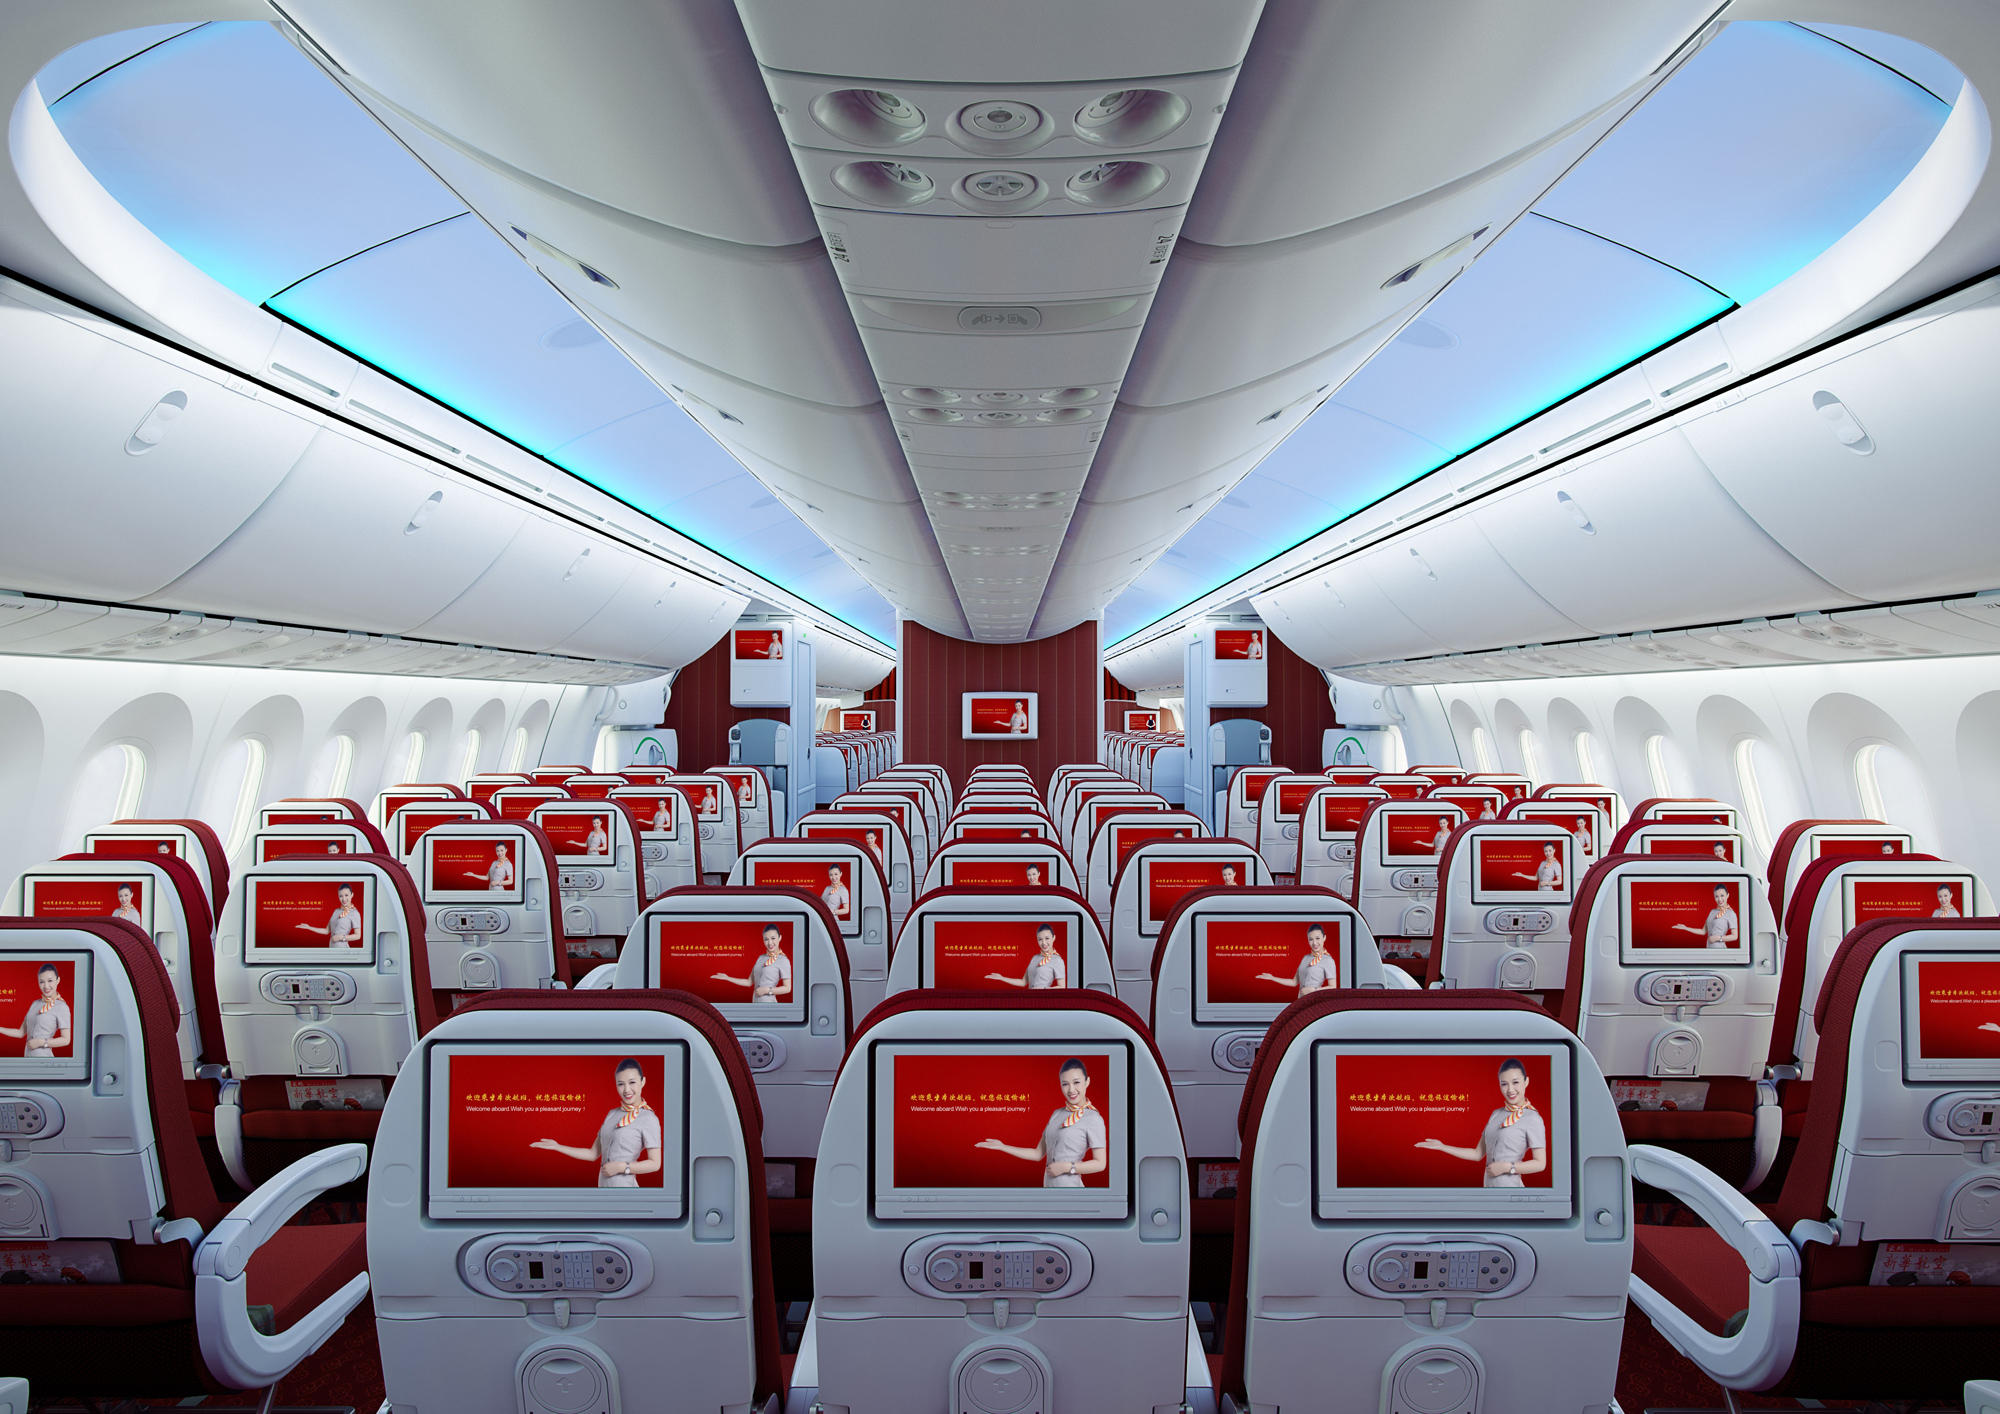 $50 off + $50 Promotional Code On Your Next Trip Tickets From the U.S. to China @Hainan Airlines